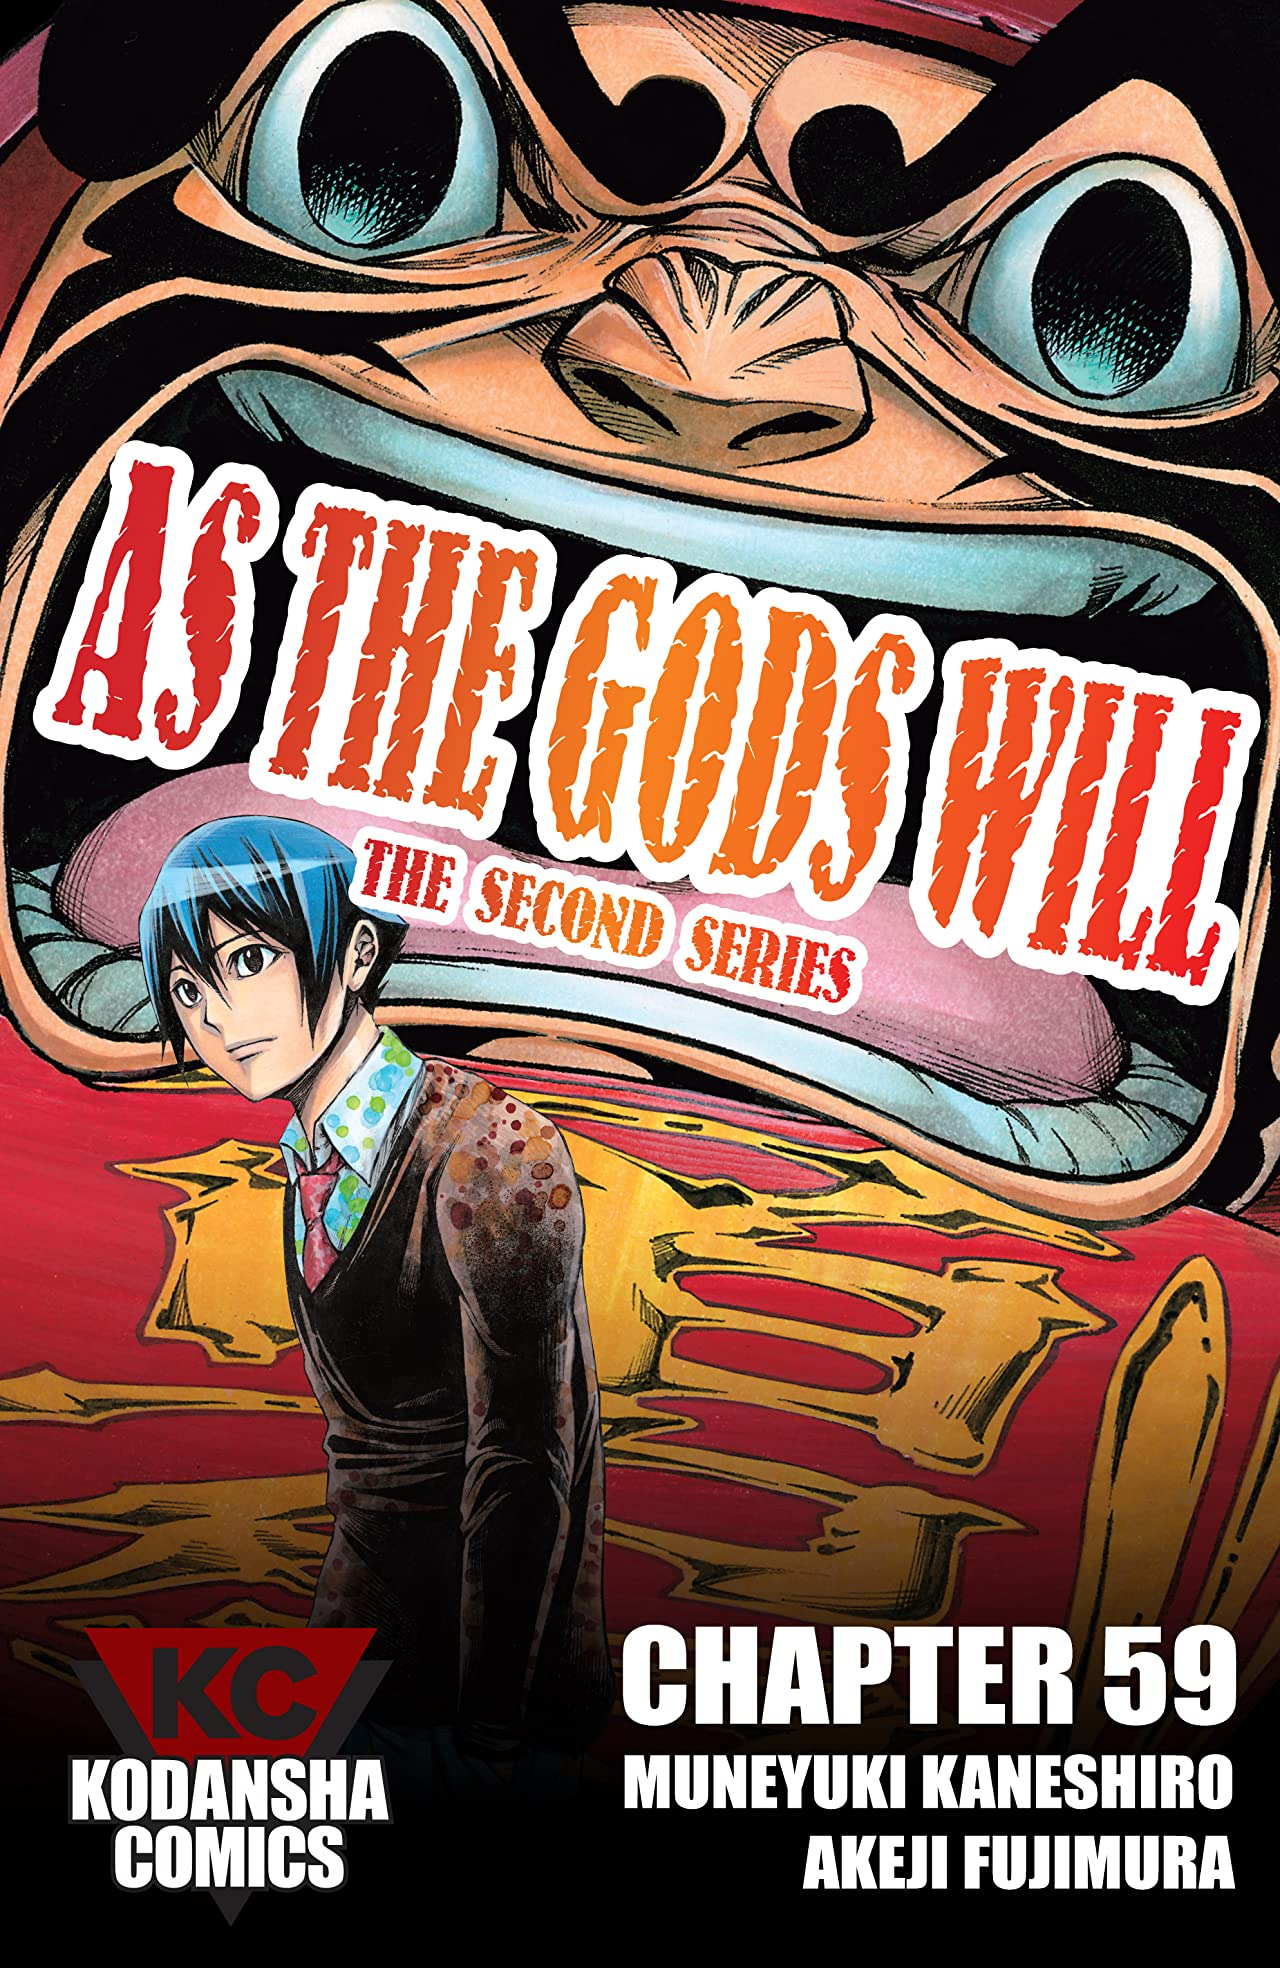 As The Gods Will: The Second Series #59